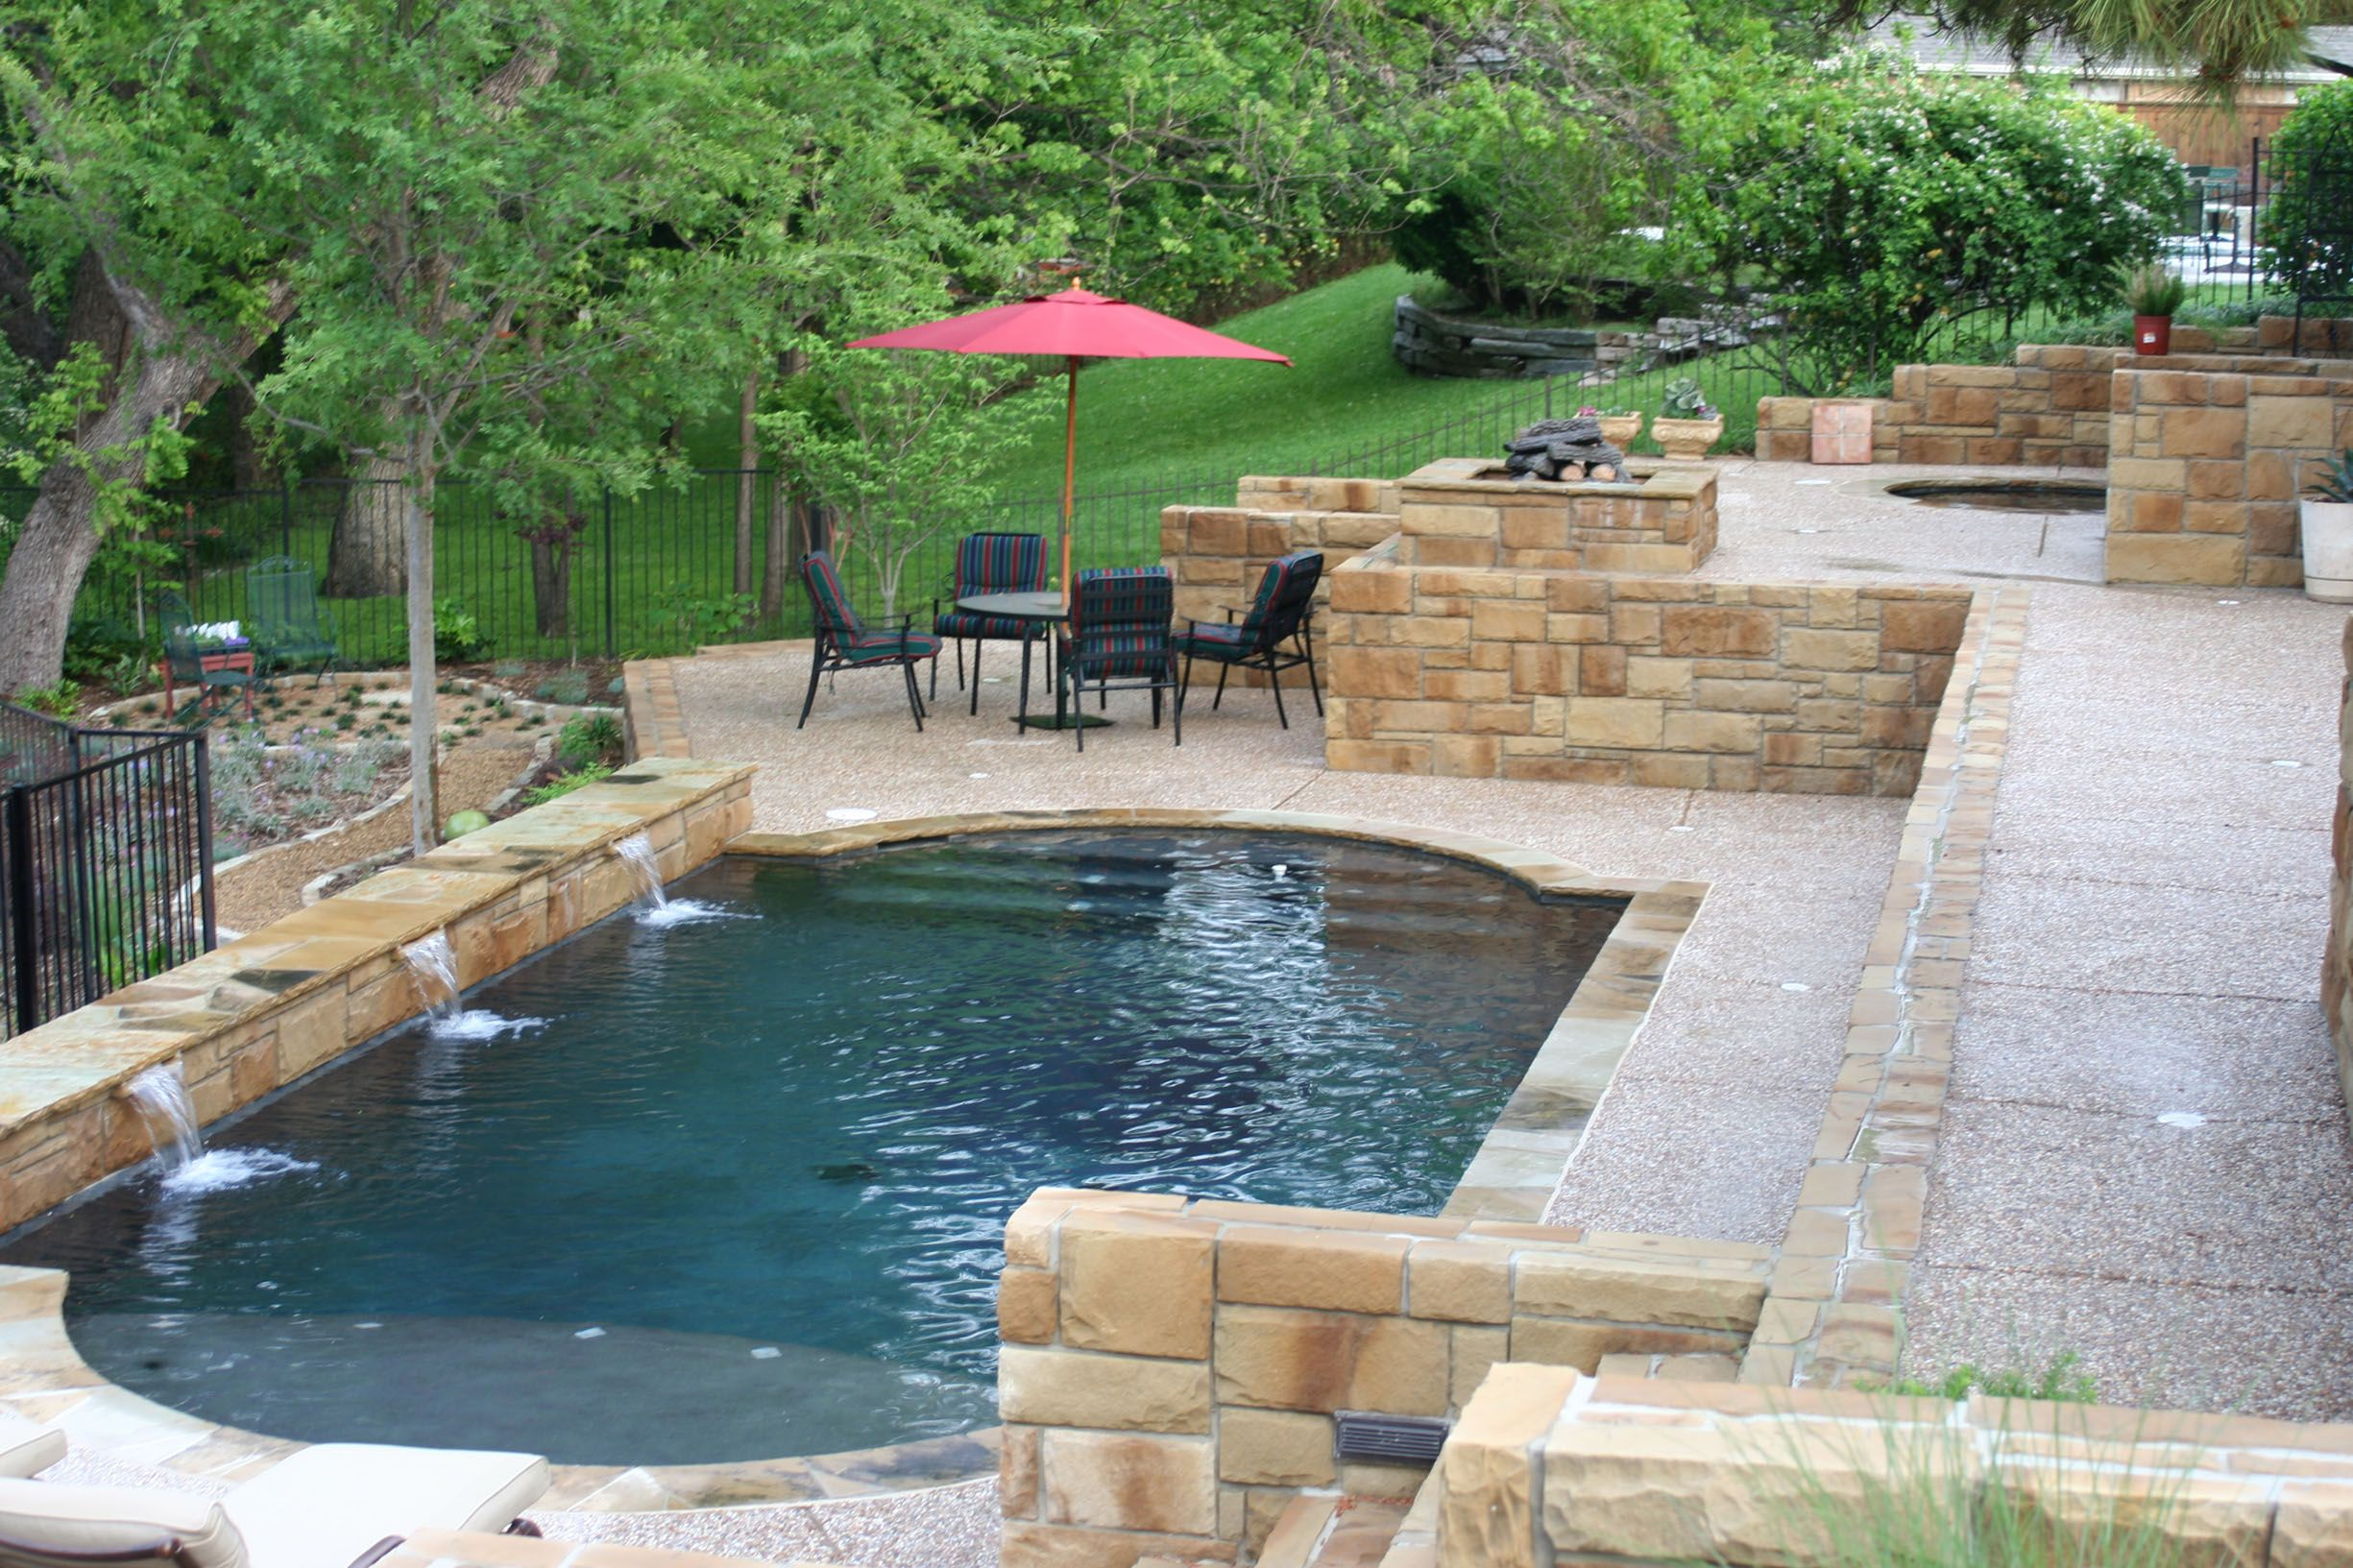 pool ideas for small back yard pool designs for stunning small backyard - Pool Designs Ideas